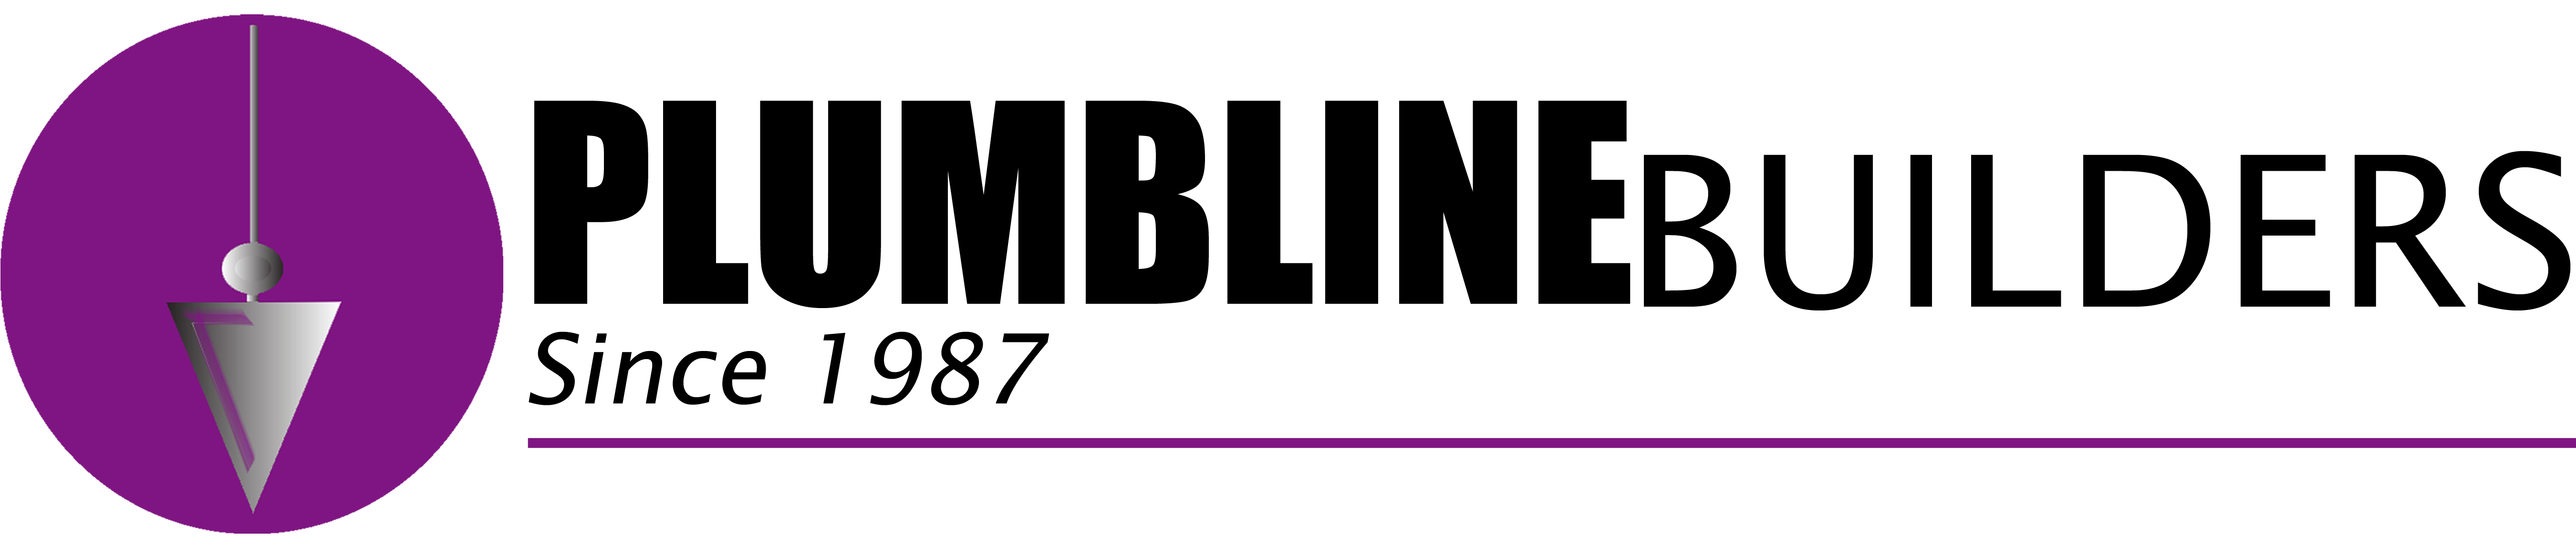 Plumbline Builders of Minneapolis